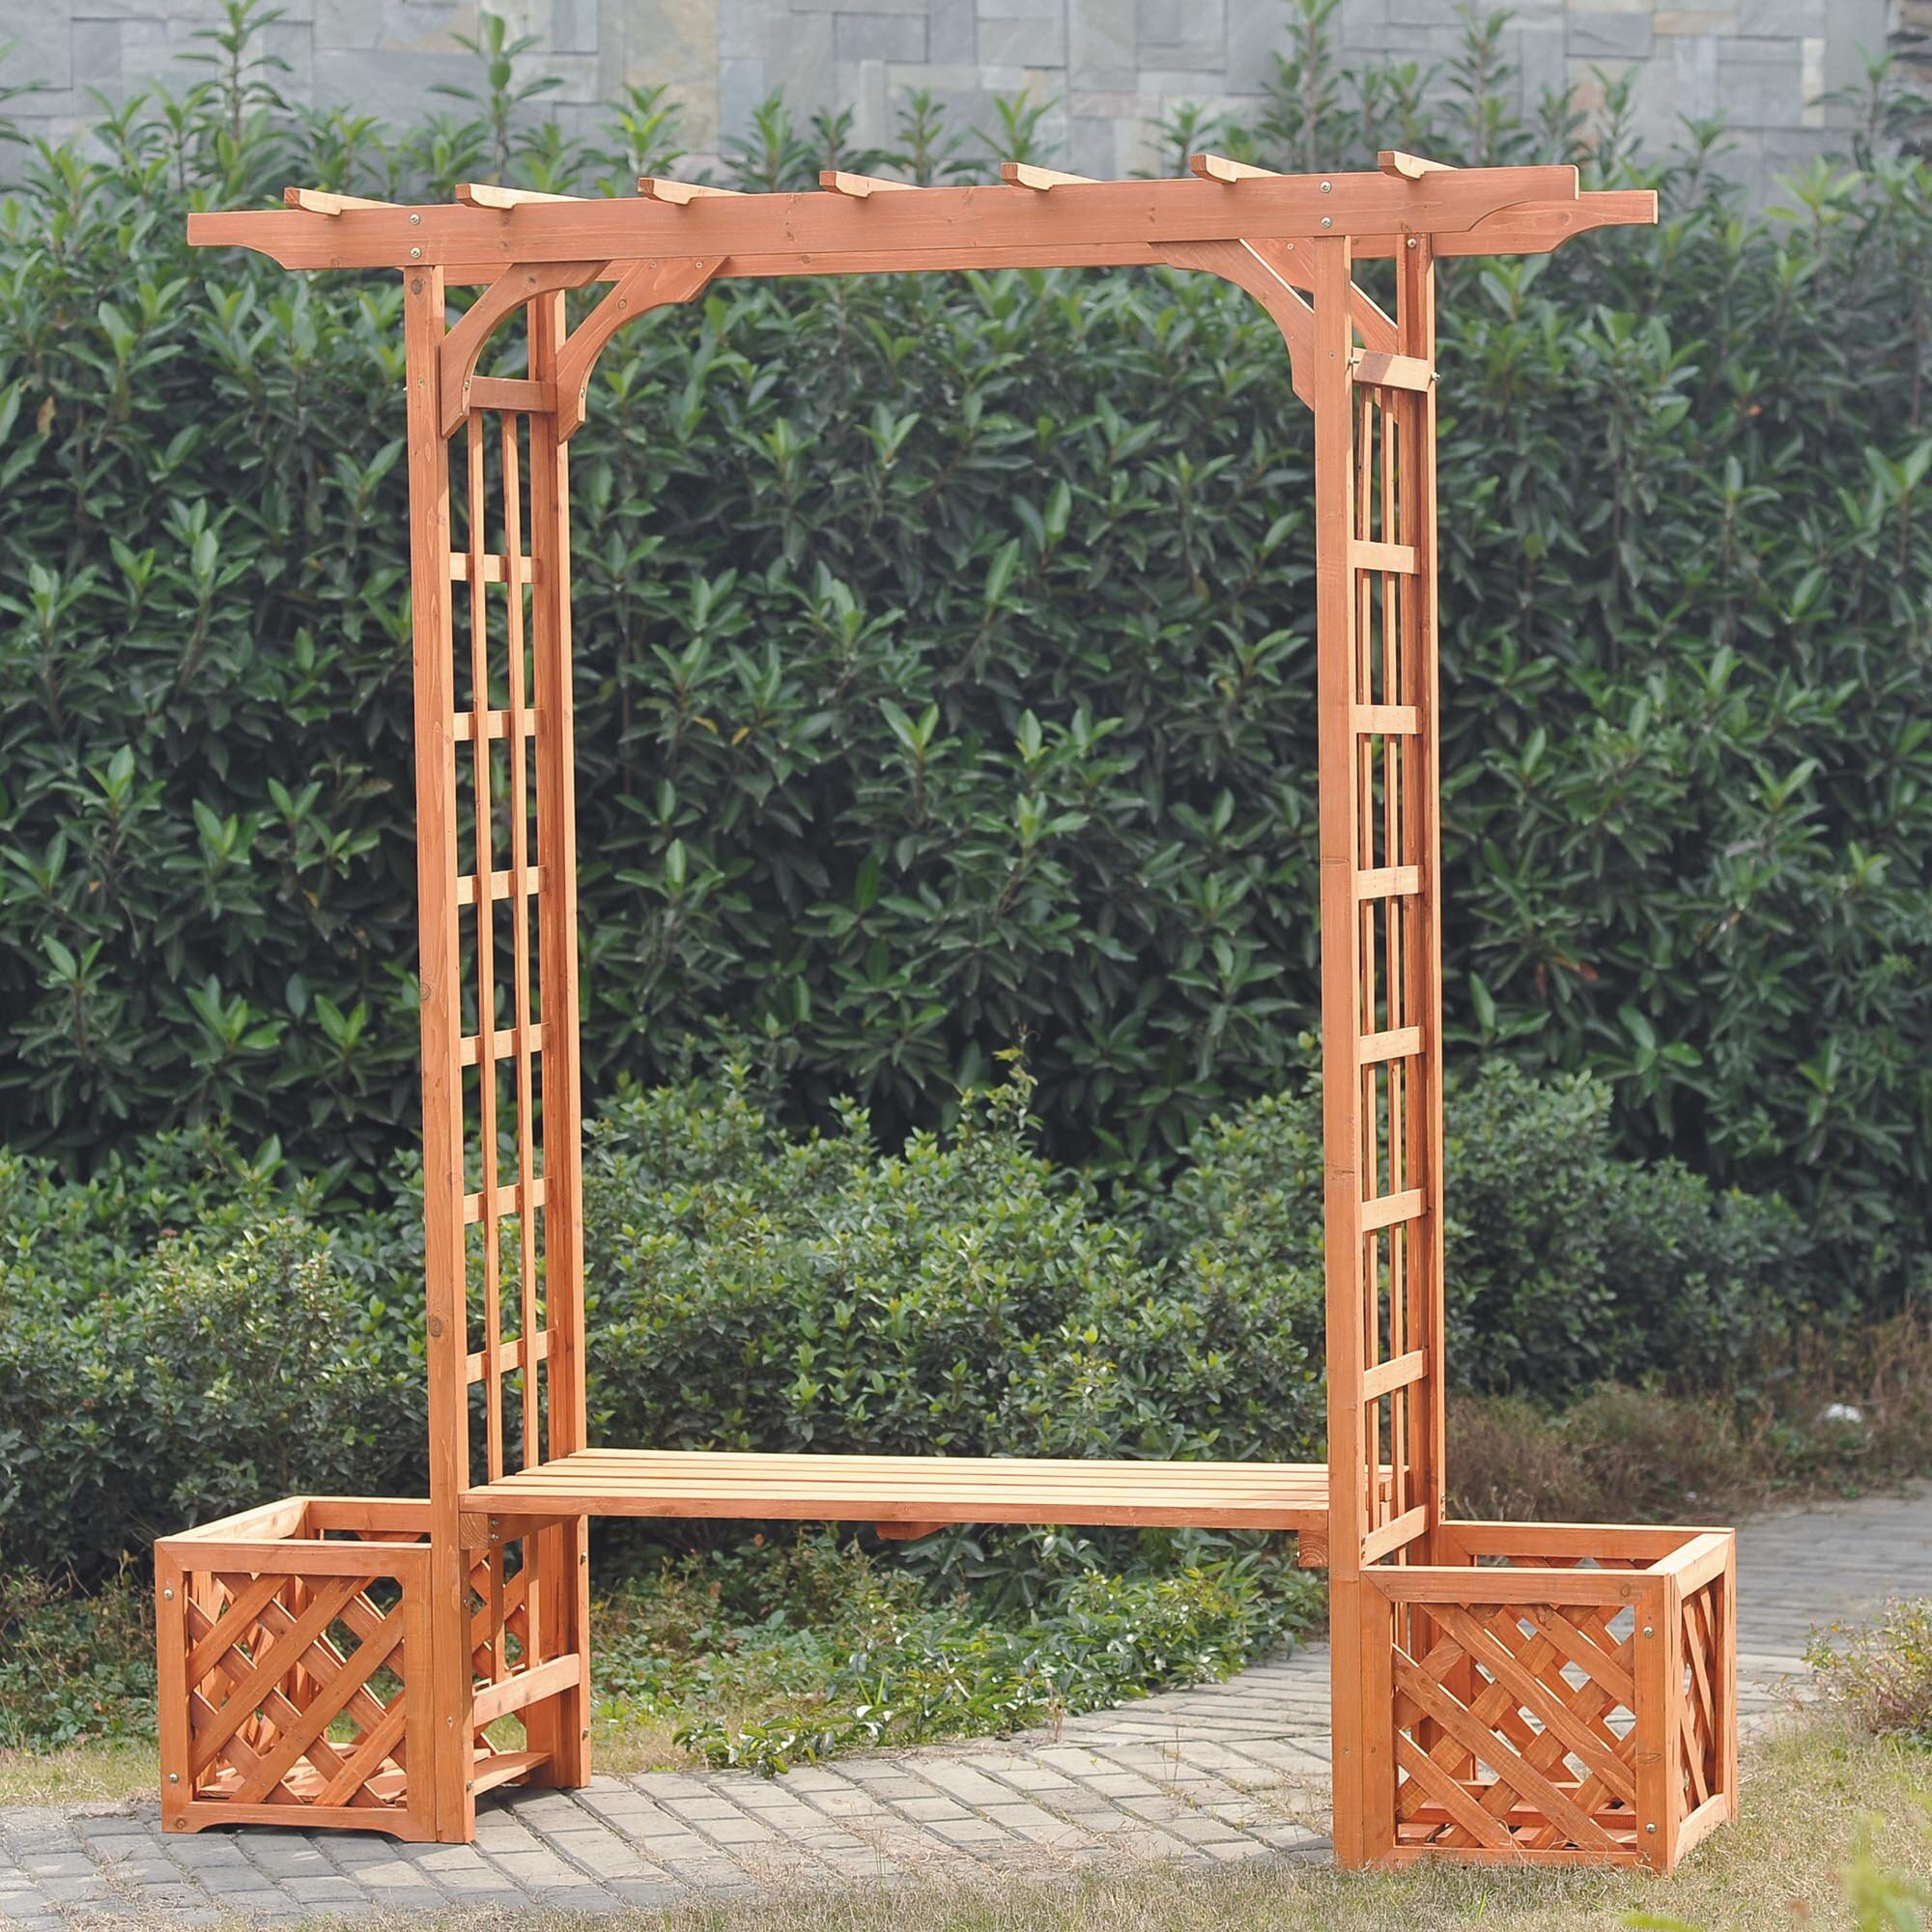 sunjoy wooden trellis arch wood arbor with bench and planter